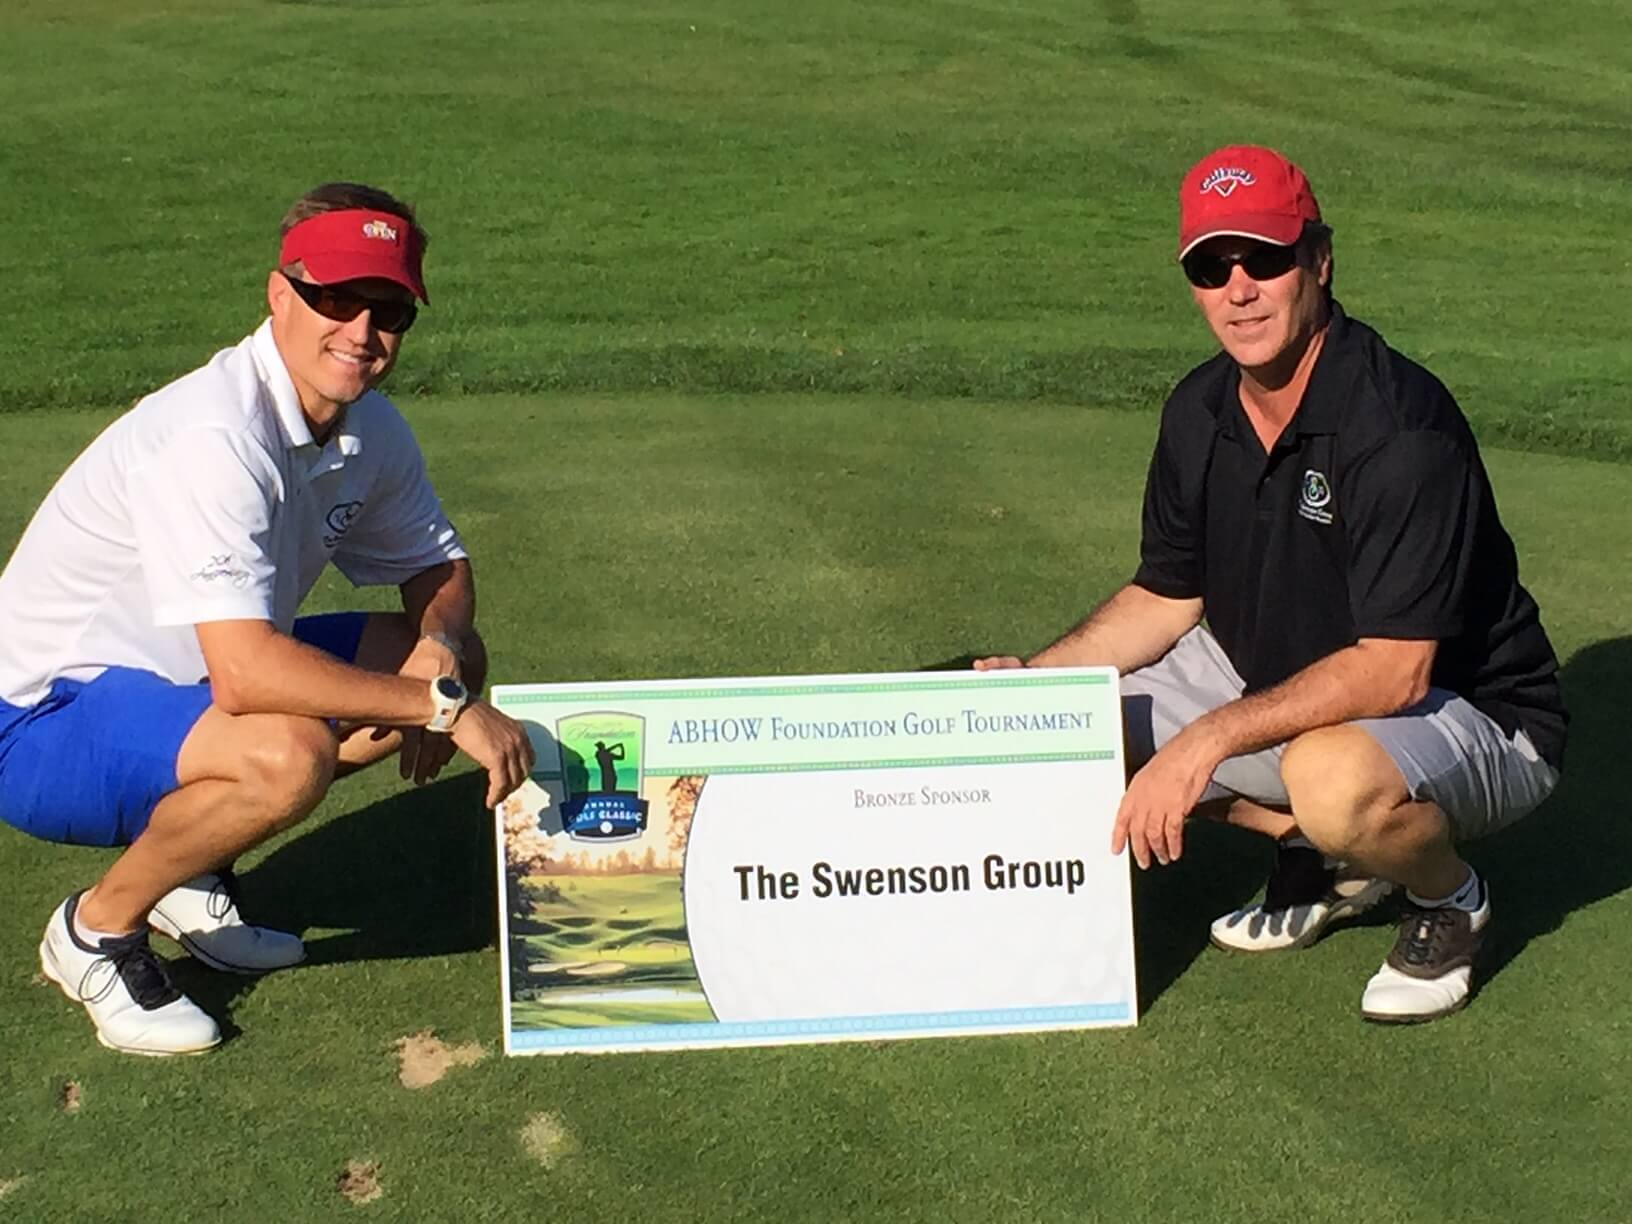 Dean & Jeff Swenson at ABHOW Foundation Golf Tournament